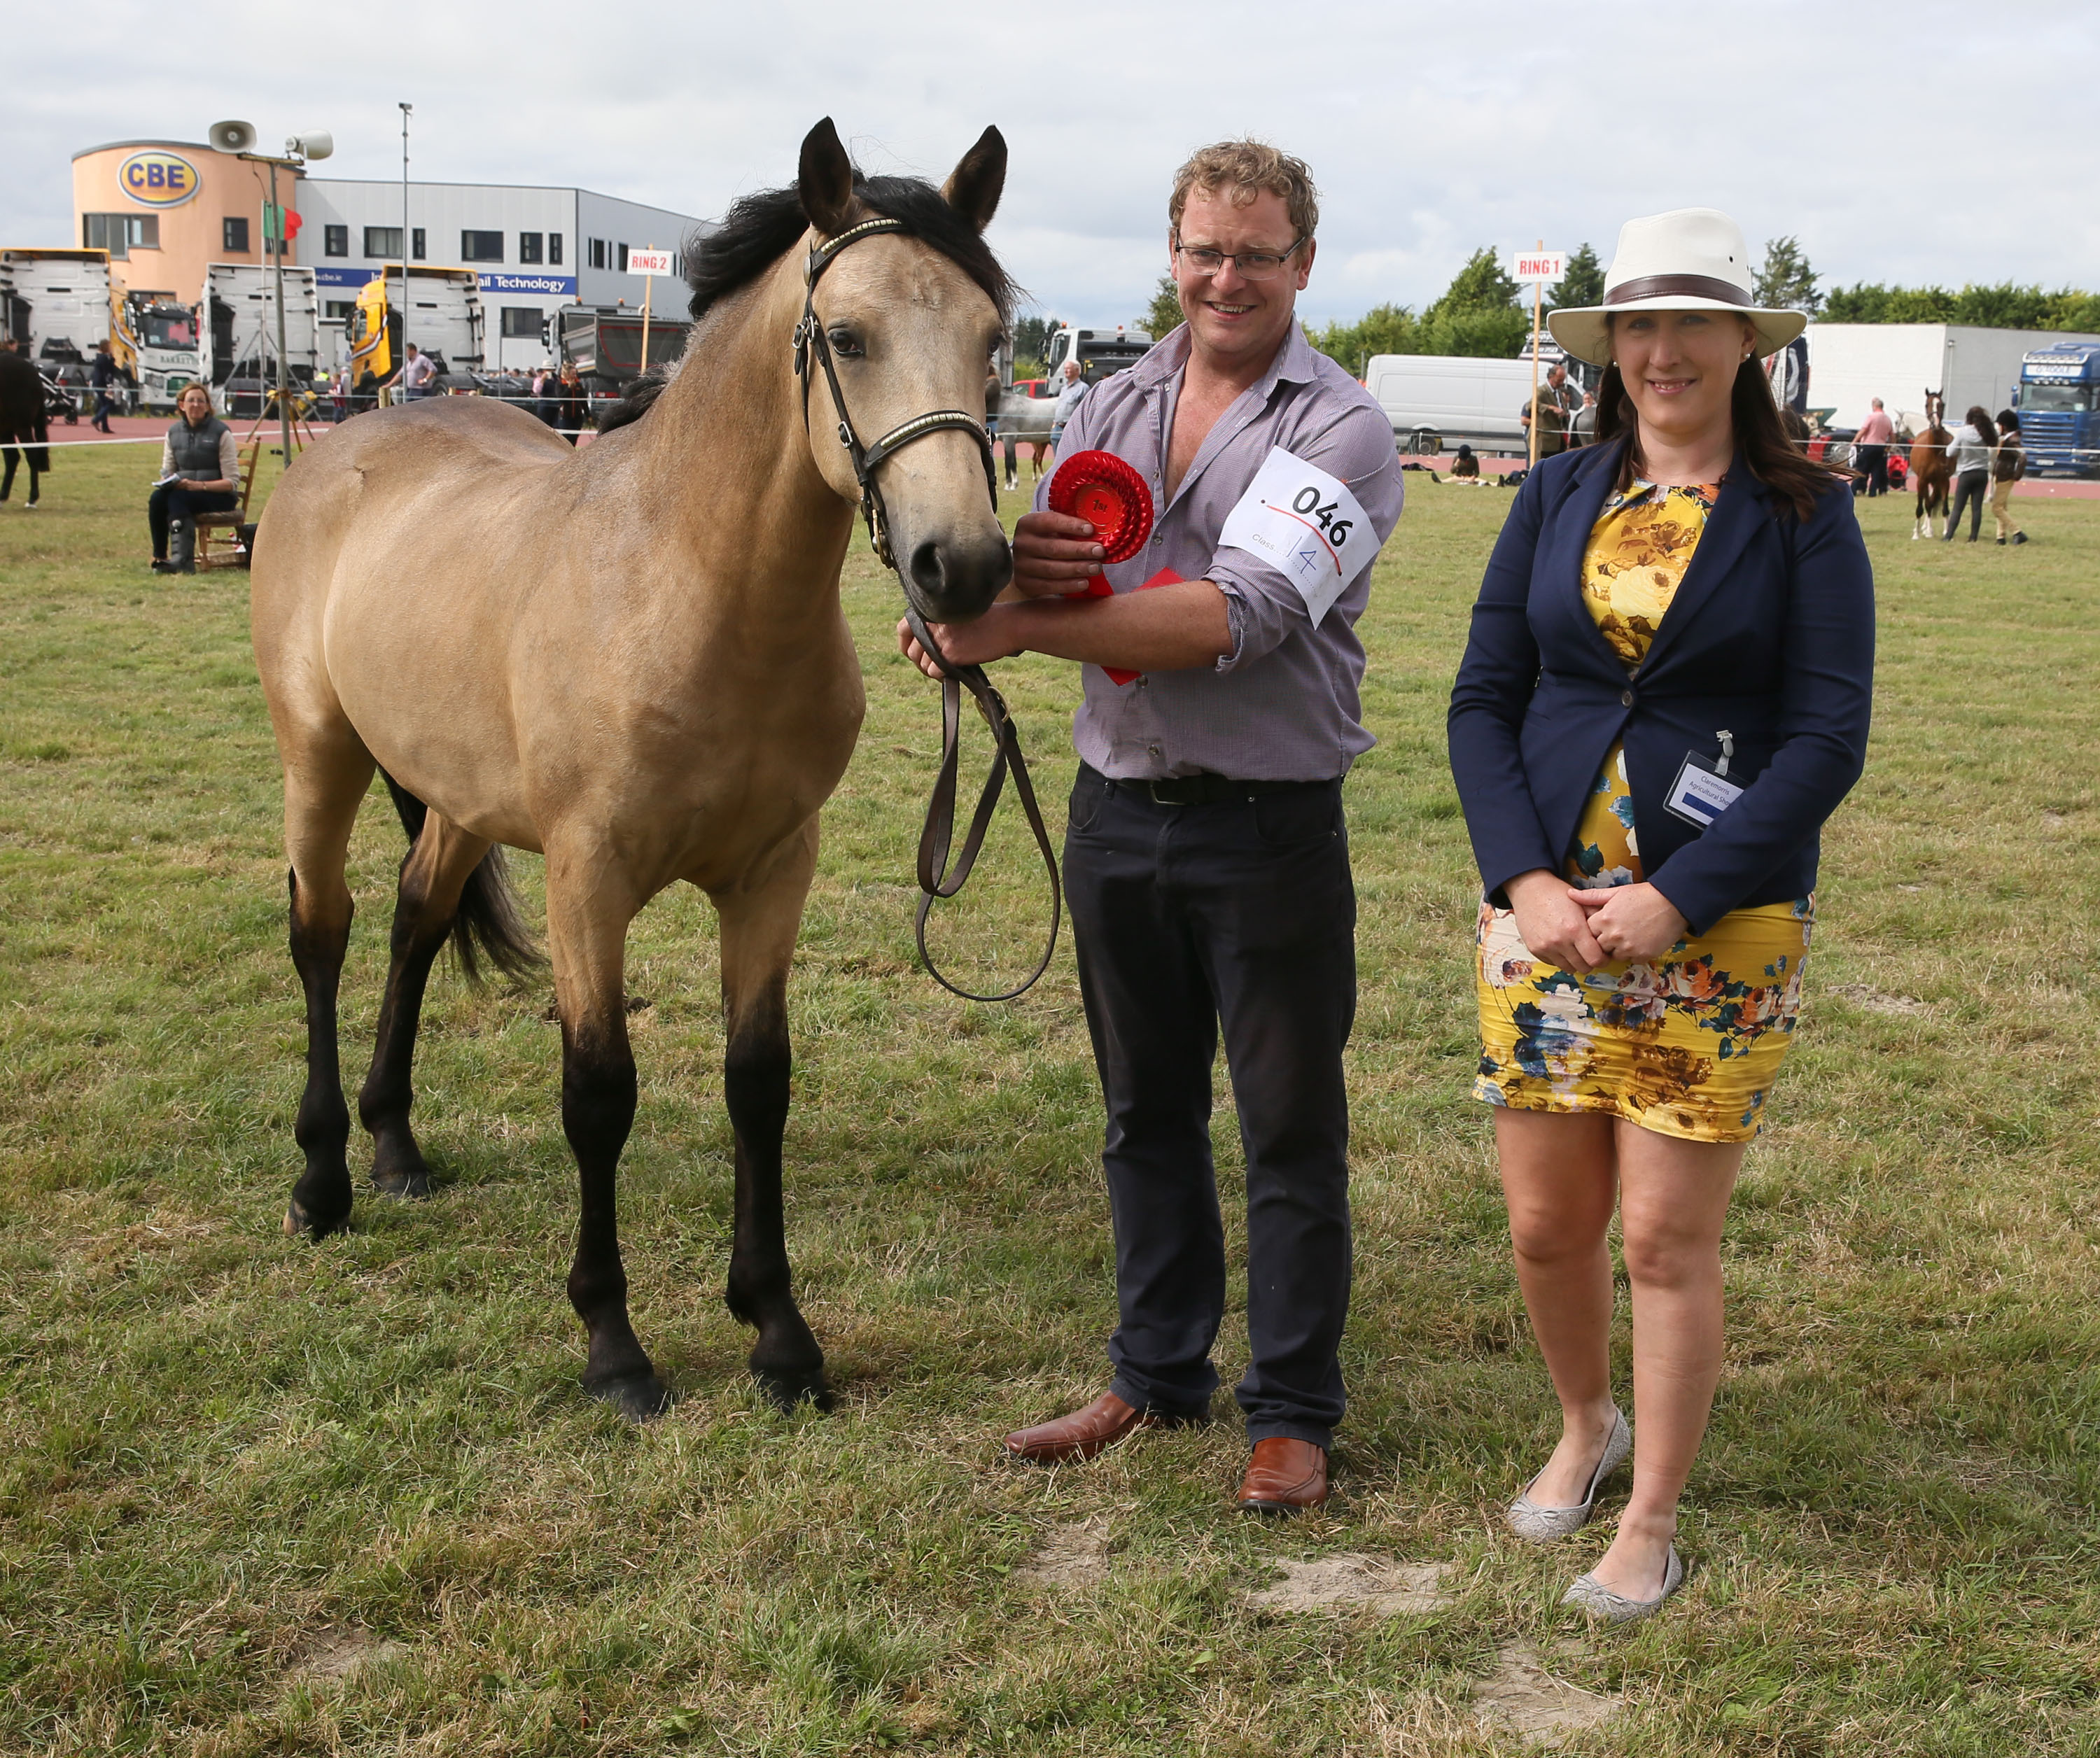 Damien Gill Clontuskert Co Roscommon with winner in class 14 Yearling Colt or Gelding pictured with Sarah Conway (Judge) at Claremorris 100th Agricultural Show 2018. Photo © Michael Donnelly